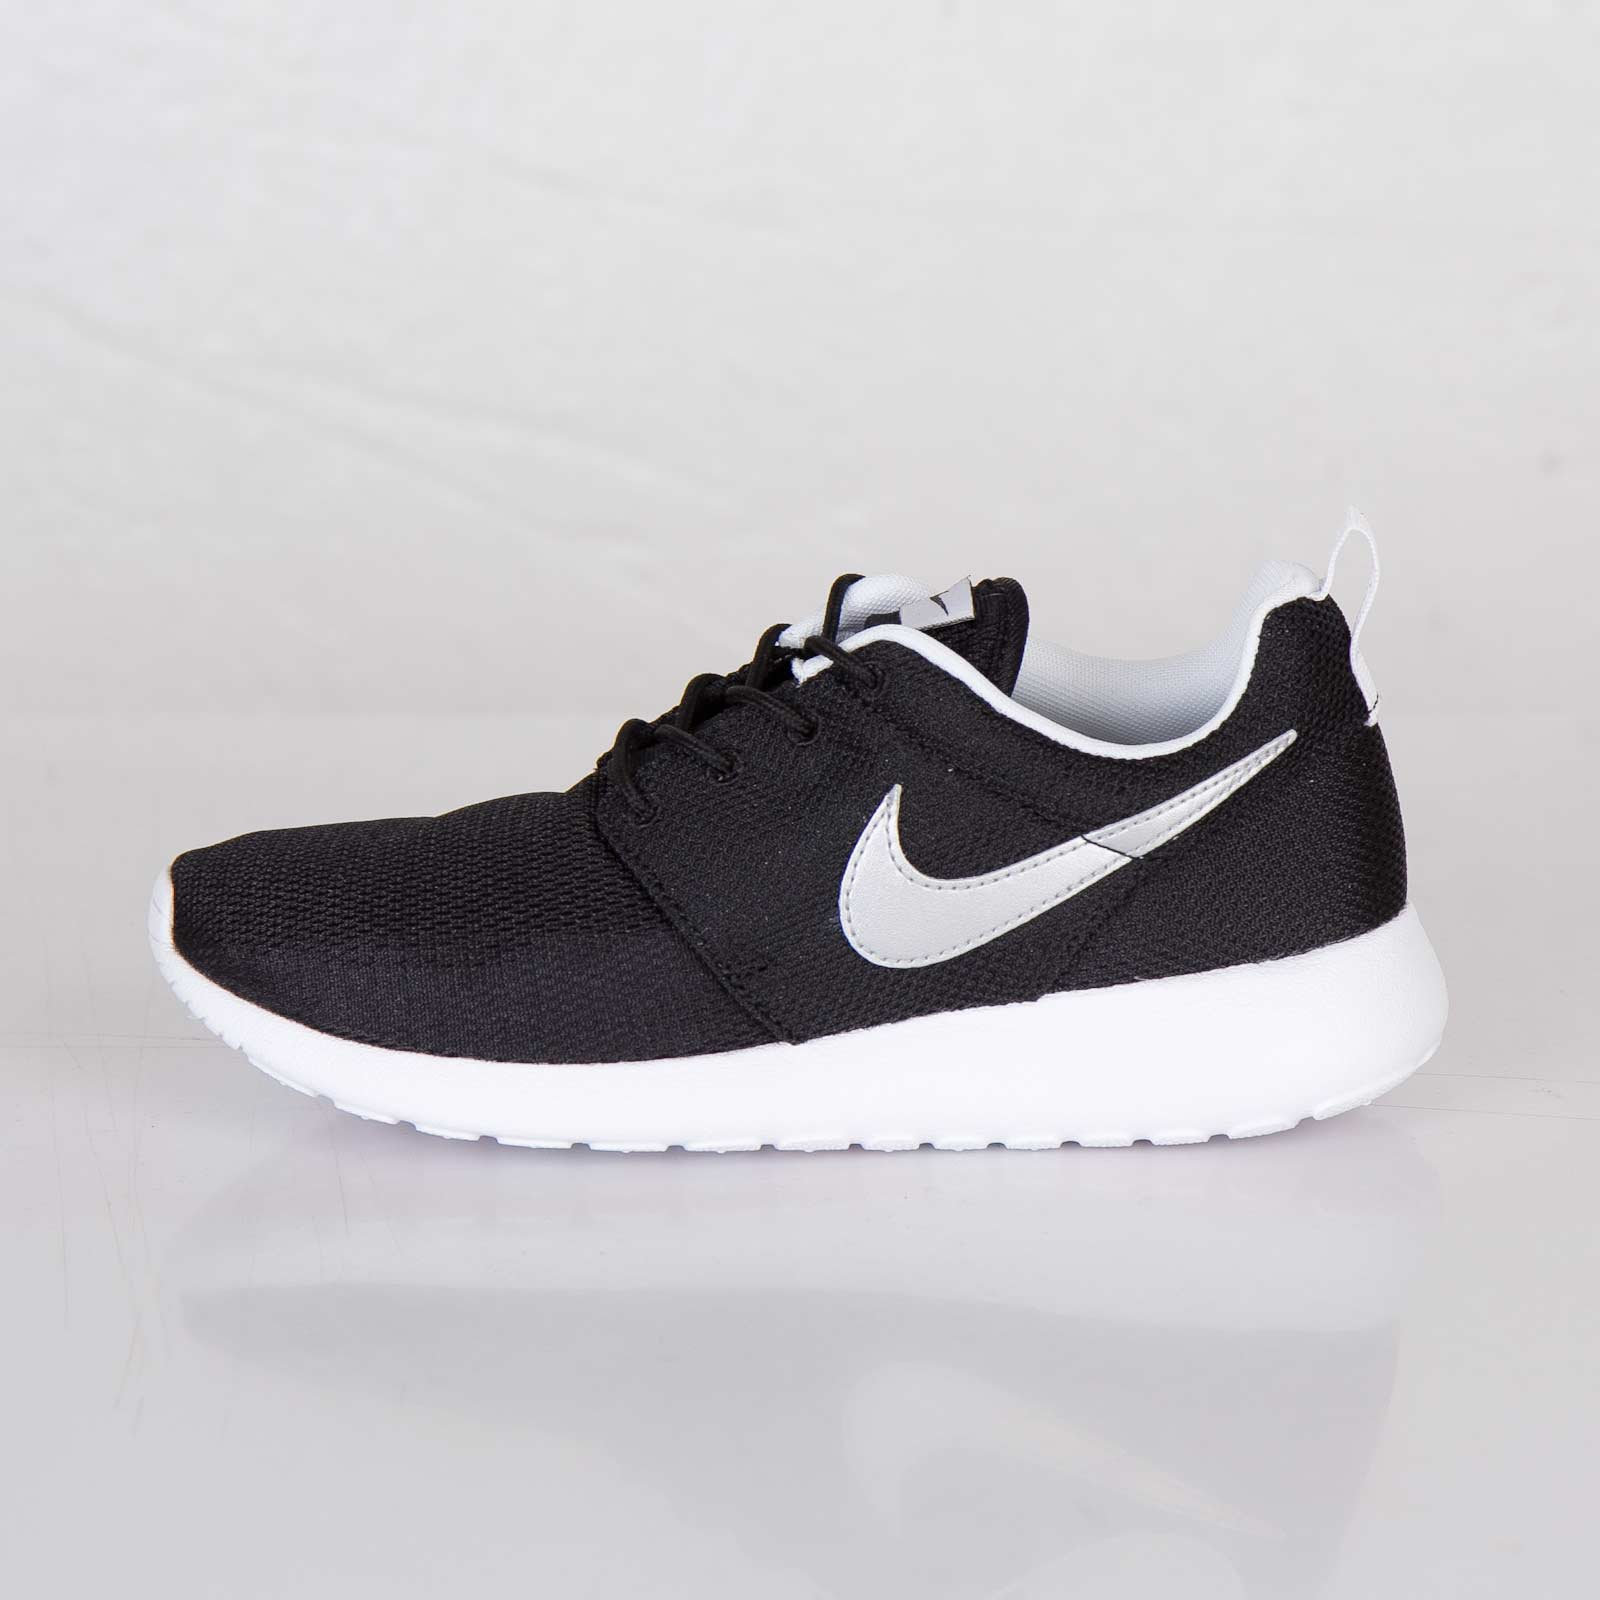 separation shoes c180b dbe8e Nike Roshe Run (GS) - 599728-007 - Sneakersnstuff   sneakers   streetwear  online since 1999